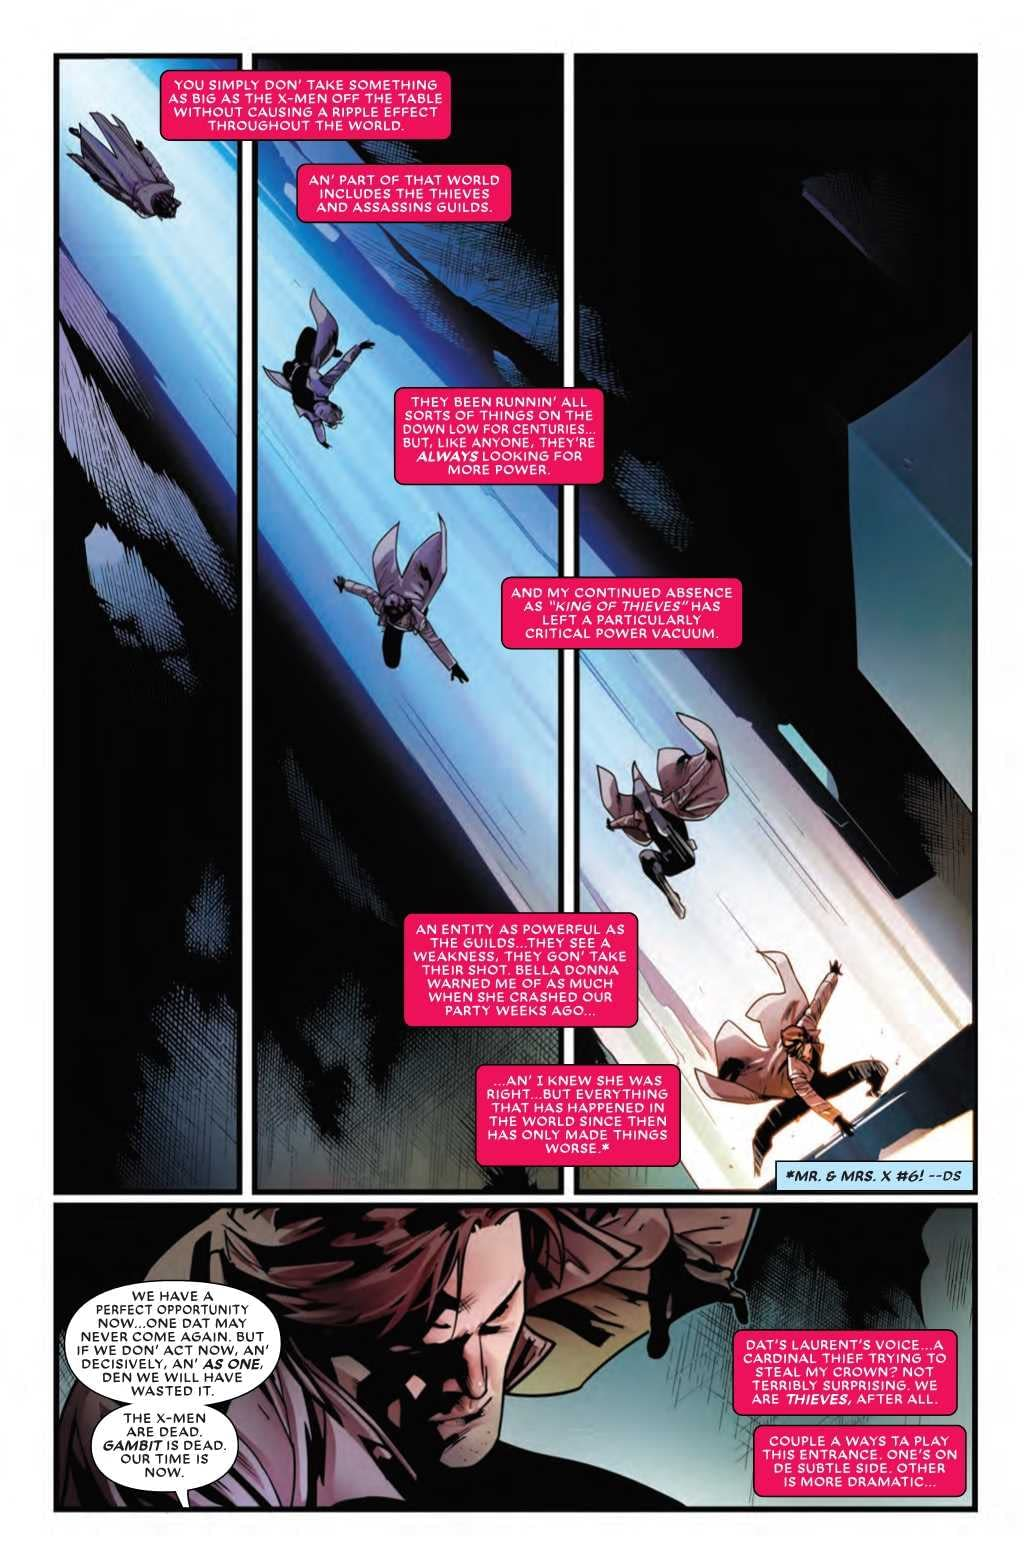 Does Gambit Still Want to Be an X-Man? Mr. and Mrs. X #11 Preview